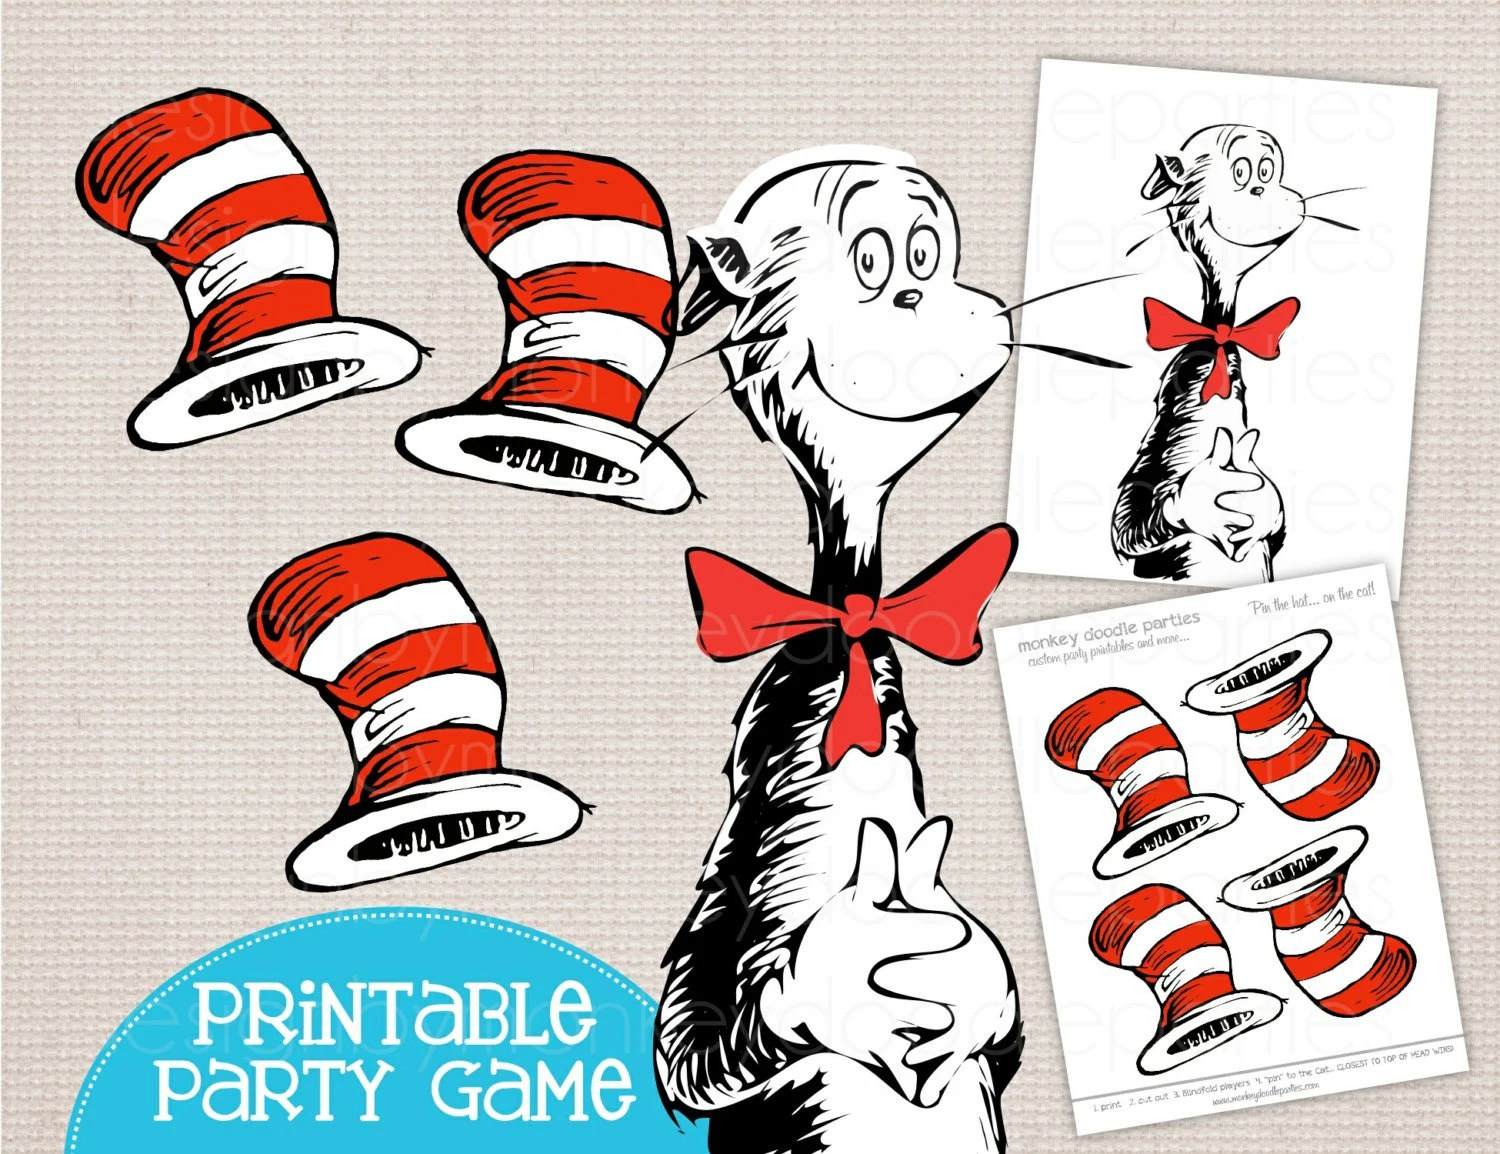 Adorable Pin The Hat On The Cat Dr Seuss Inspired Printable